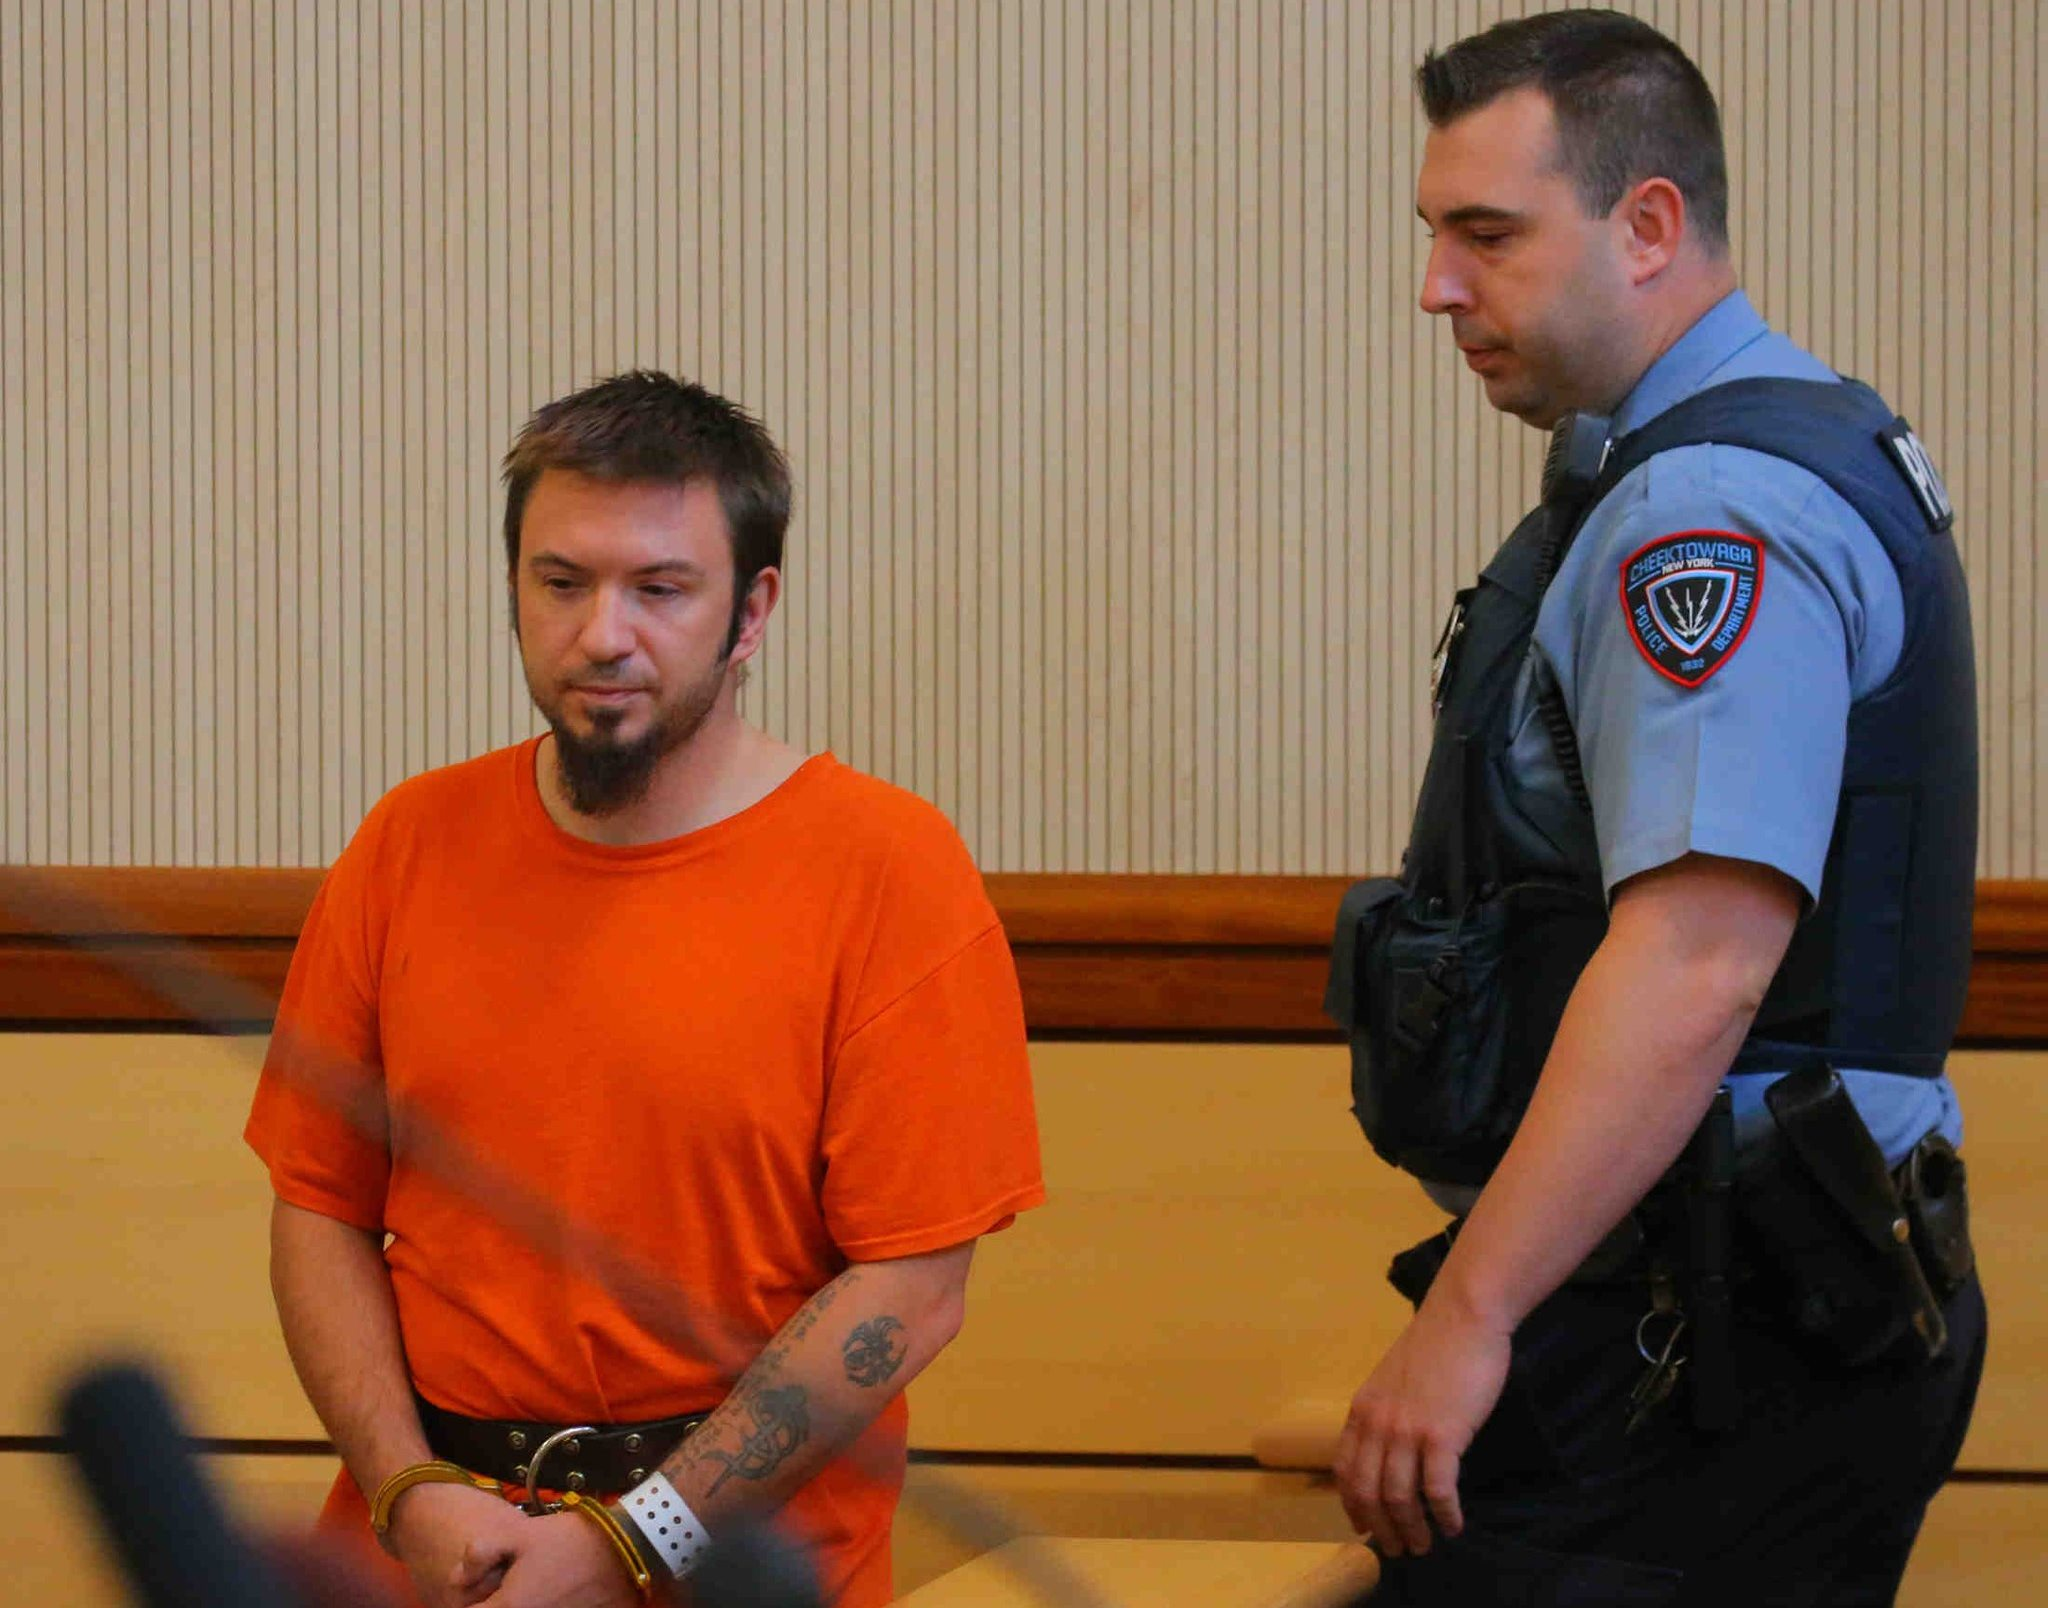 Shane Stevenson, left, arrives in court on Wednesday, Sept. 21, 2016. Stevenson on March 15 pleaded guilty to two counts of second-degree murder for killing Raina M. Voll, 30, and her 7-year-old son Leo C. Klinger on Sept. 13, 2016.  (John Hickey/Buffalo News)